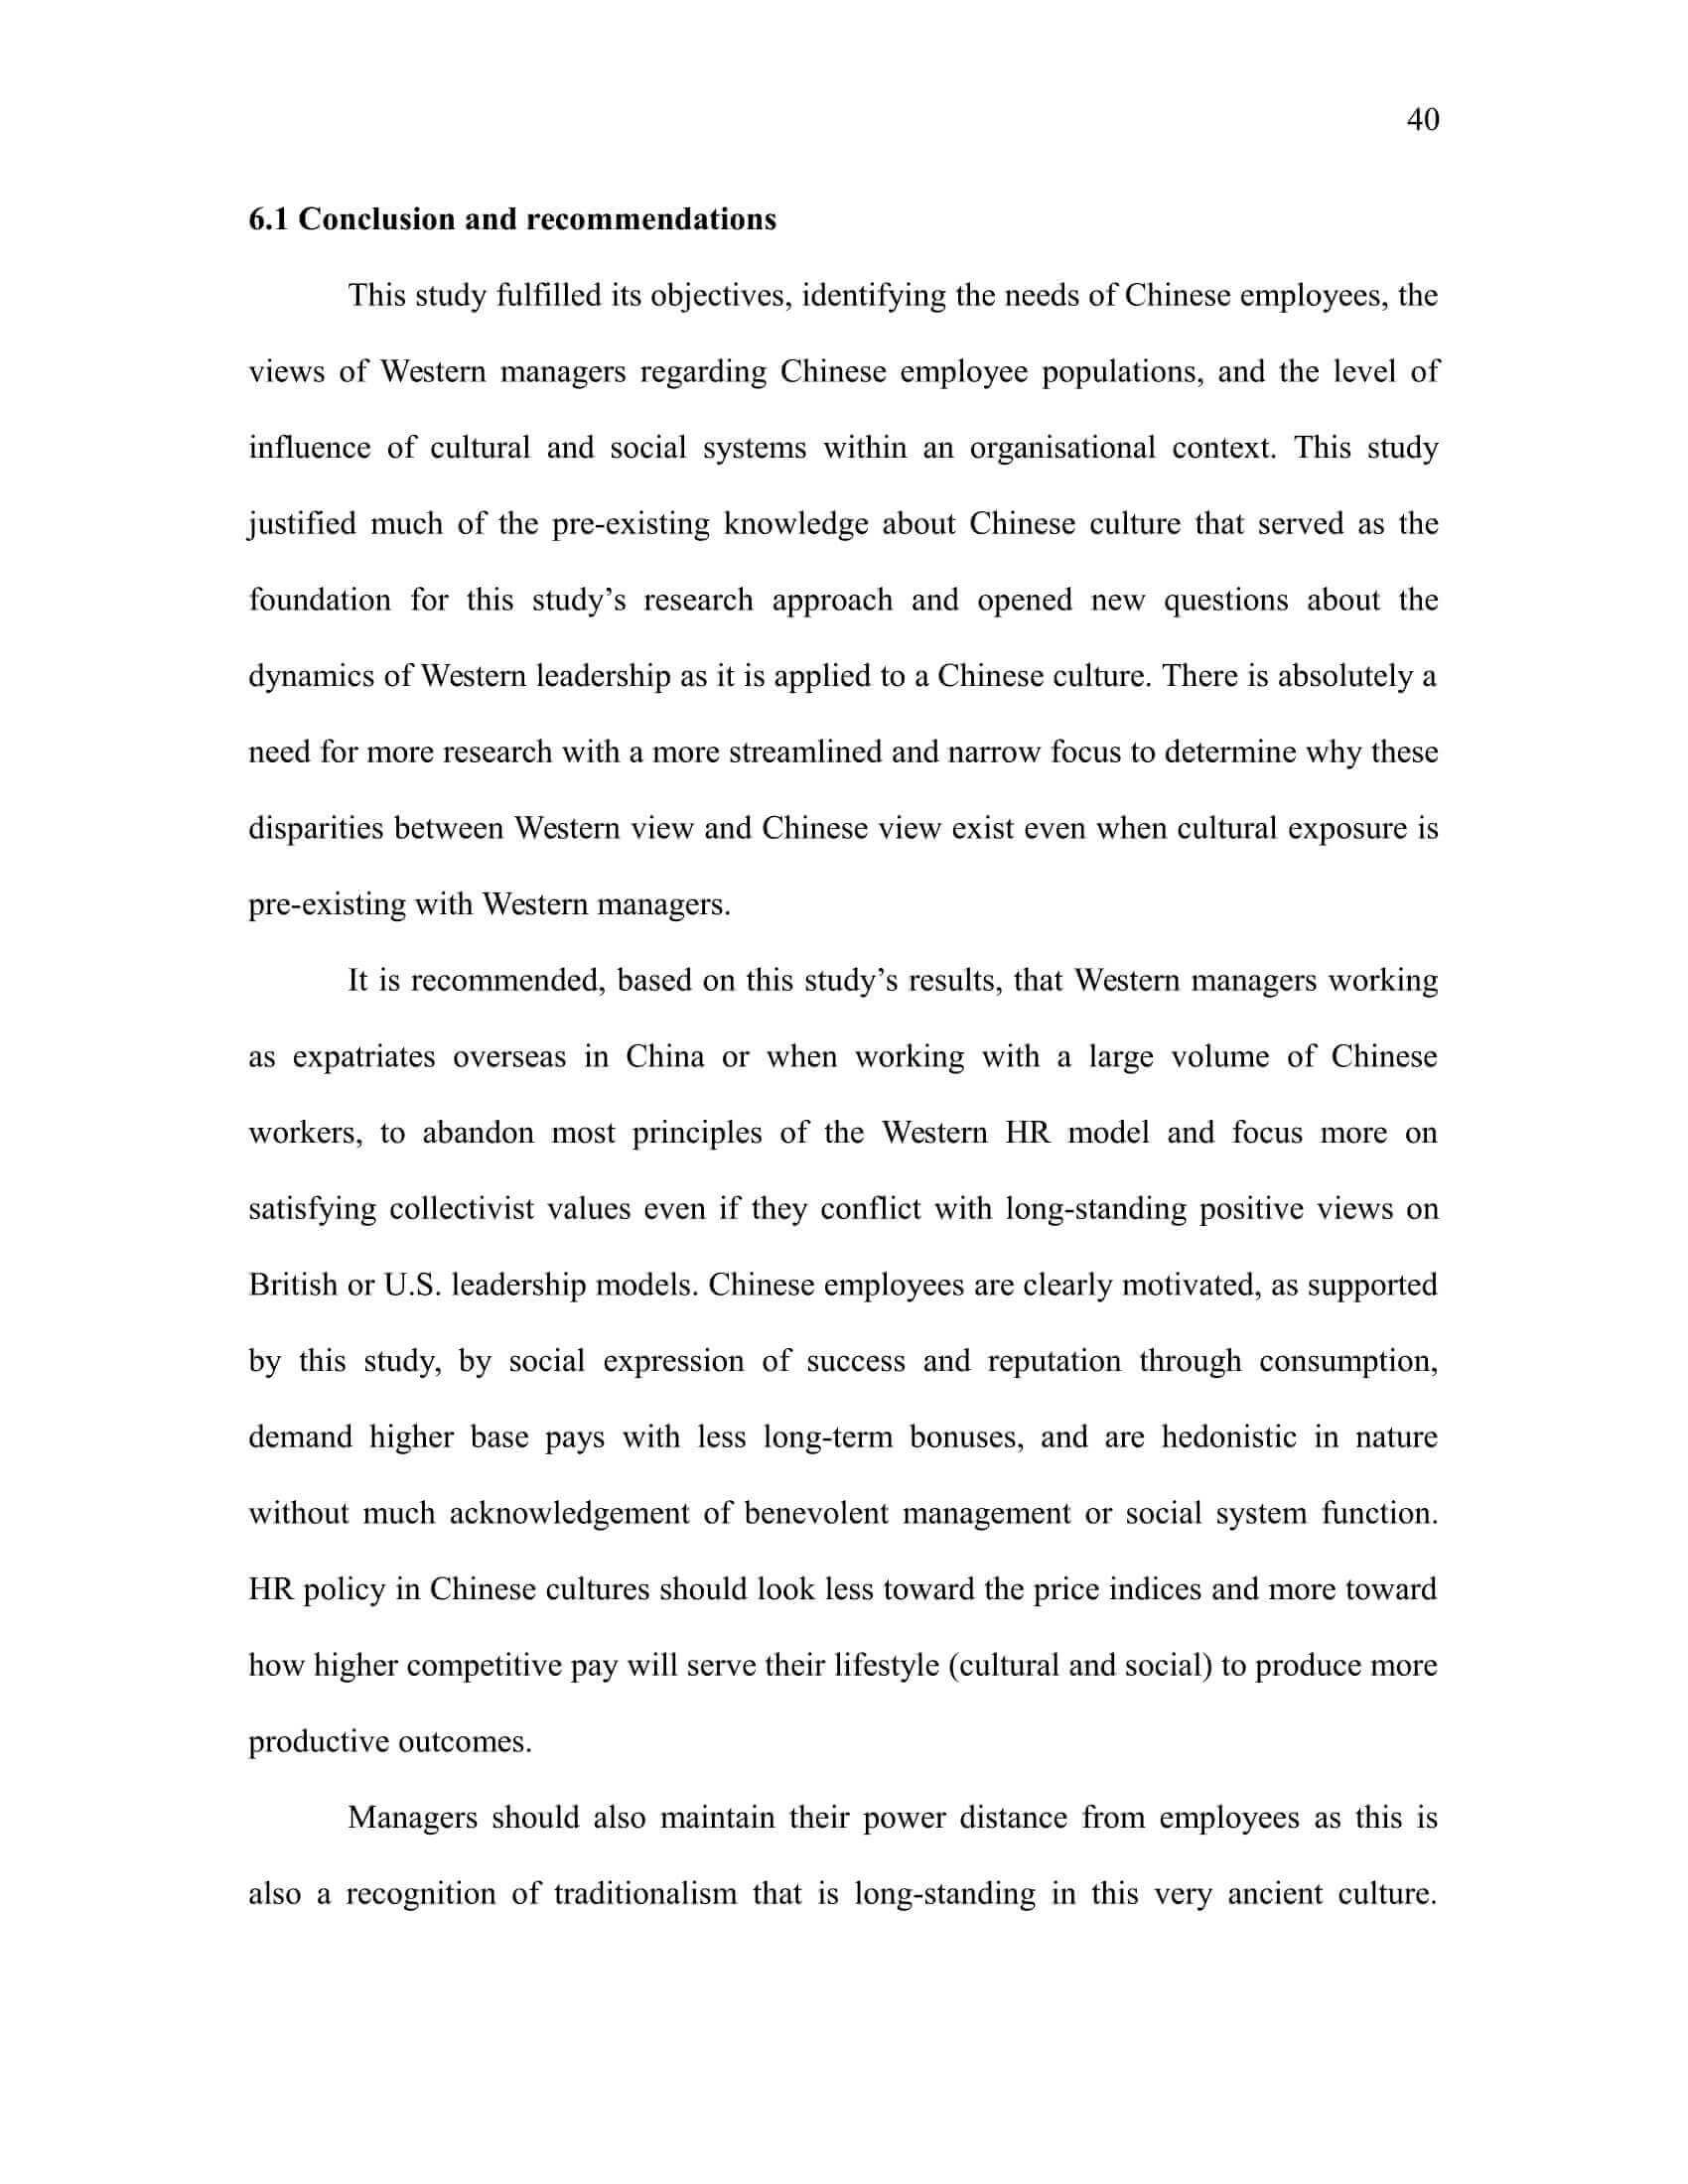 005 Essay Example Culture Stirring Chinese Introduction Organizational Questions Clash Examples Full